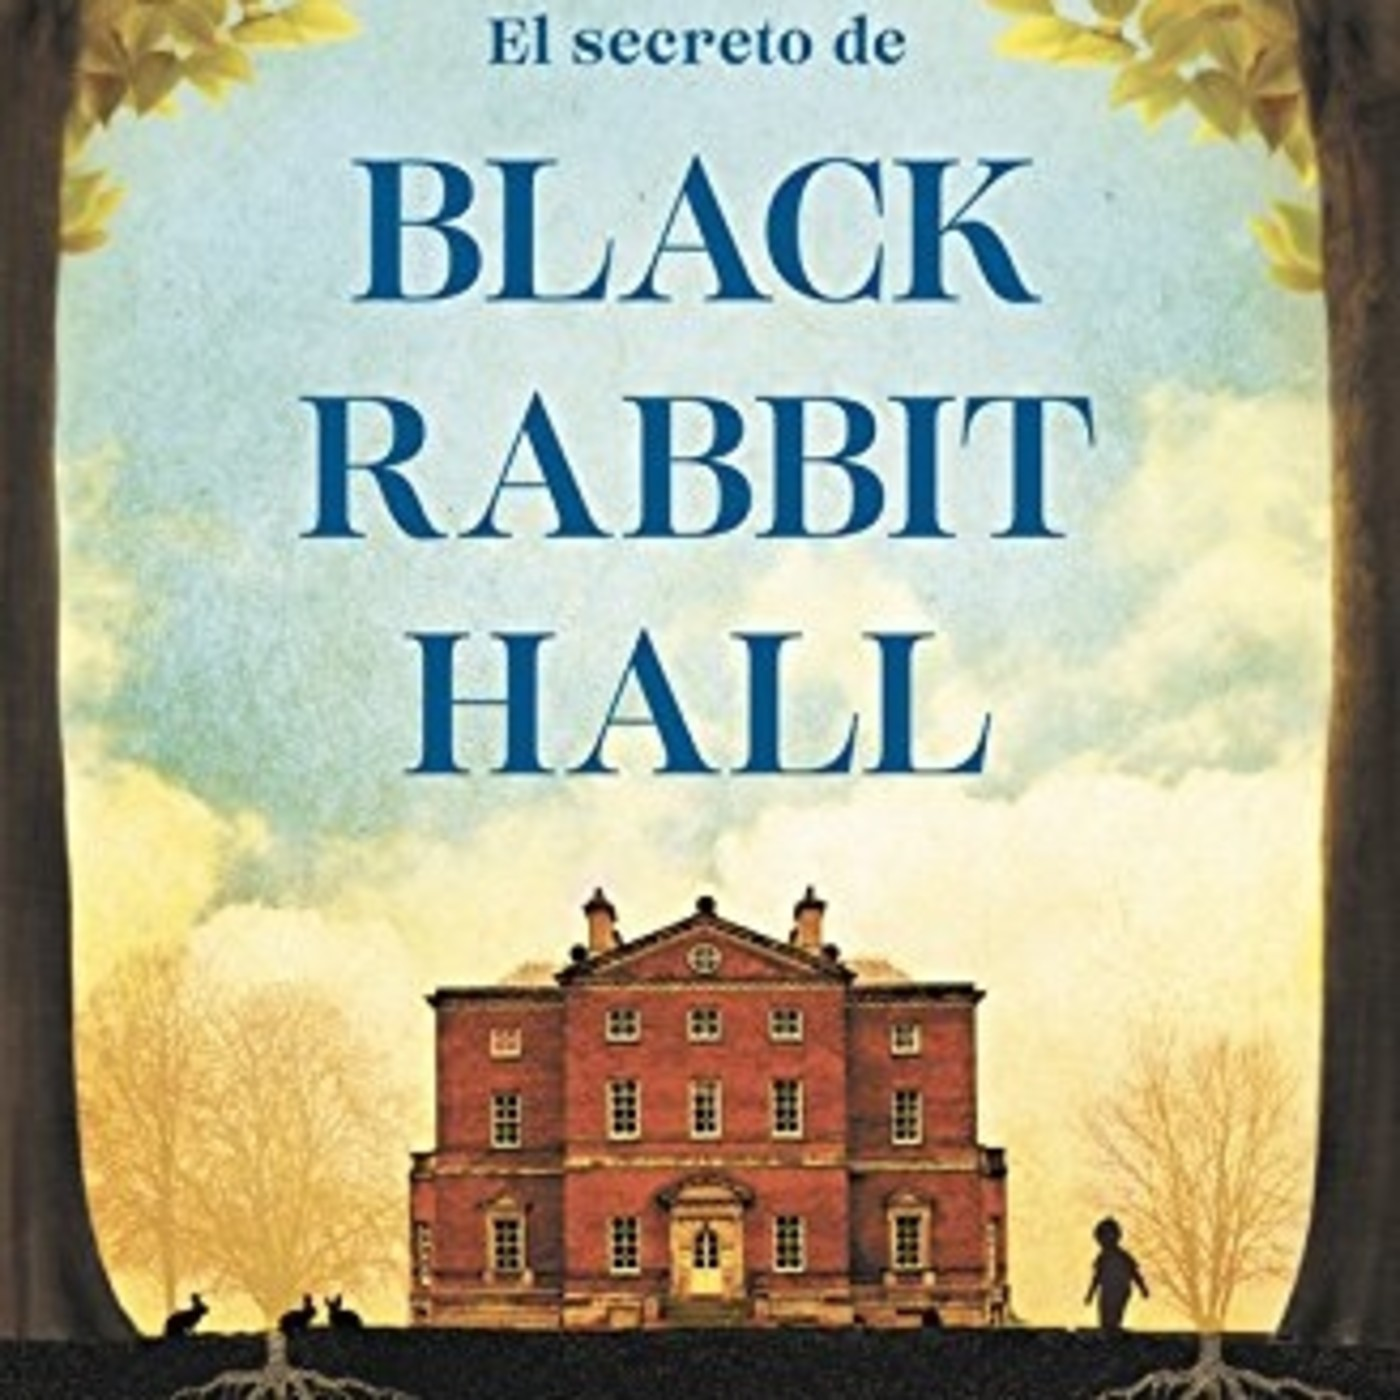 El Secreto Libro En Espanol 1x14 El Secreto De Black Rabbit Hall Eve Chase En La